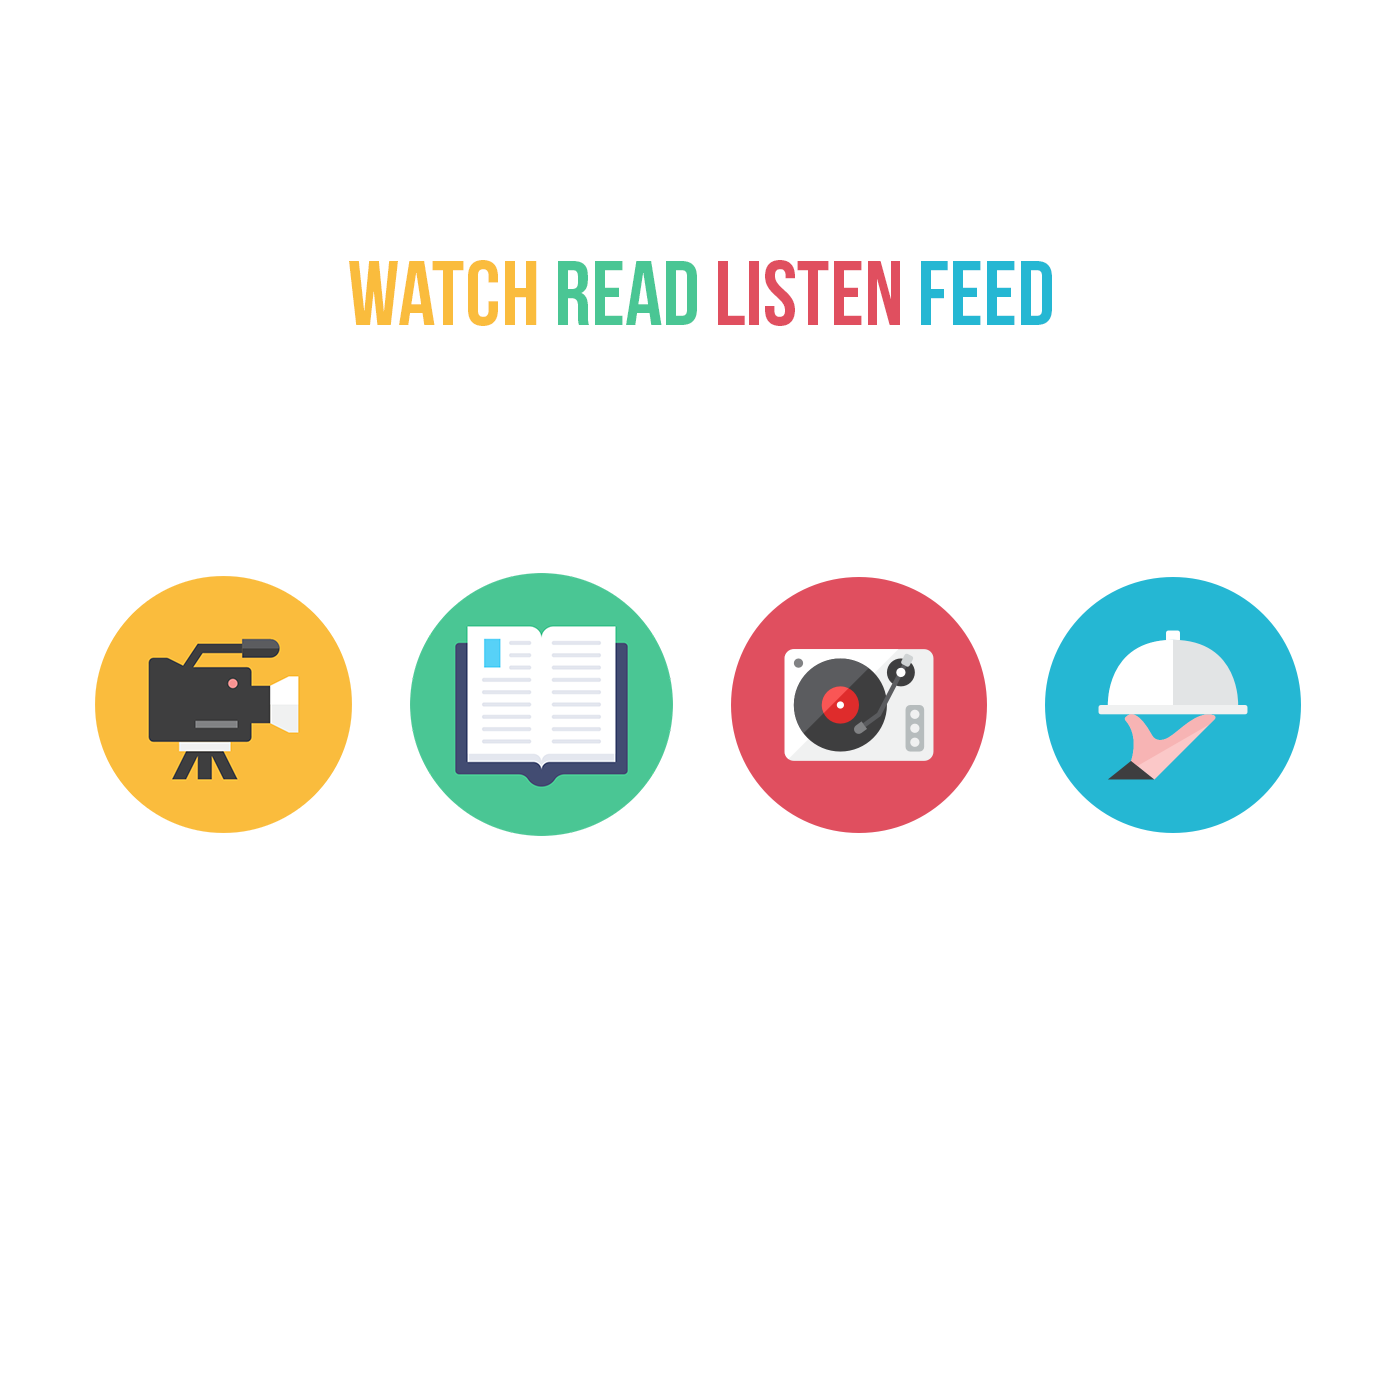 Trailer: Watch Read Listen Feed